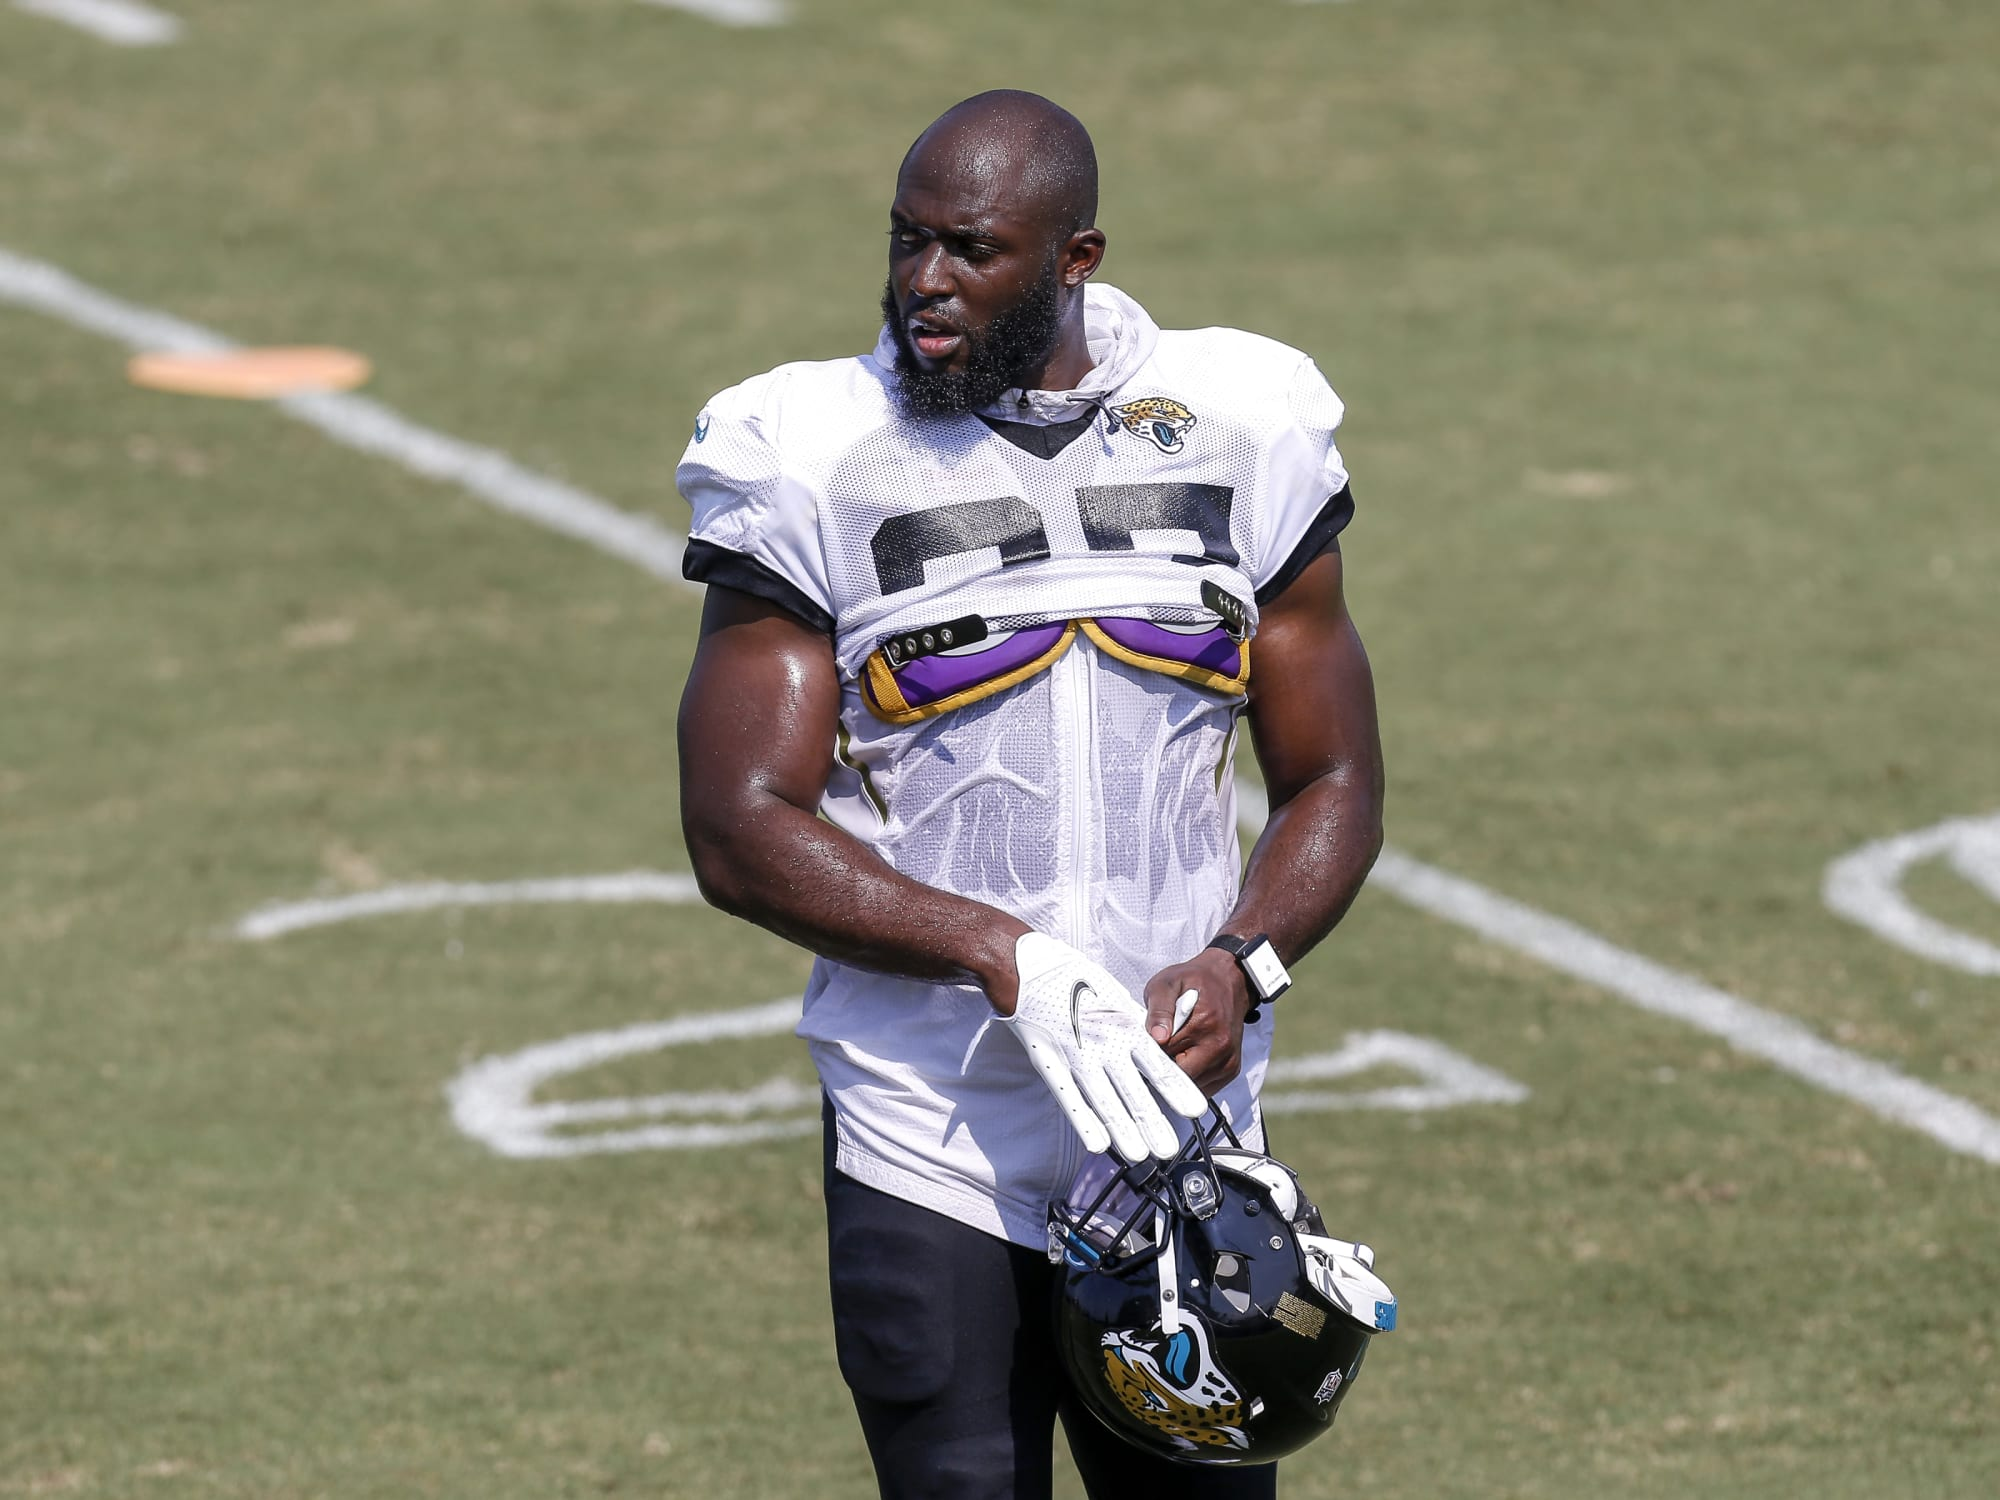 Leonard Fournette May Not Even Start For The Buccaneers